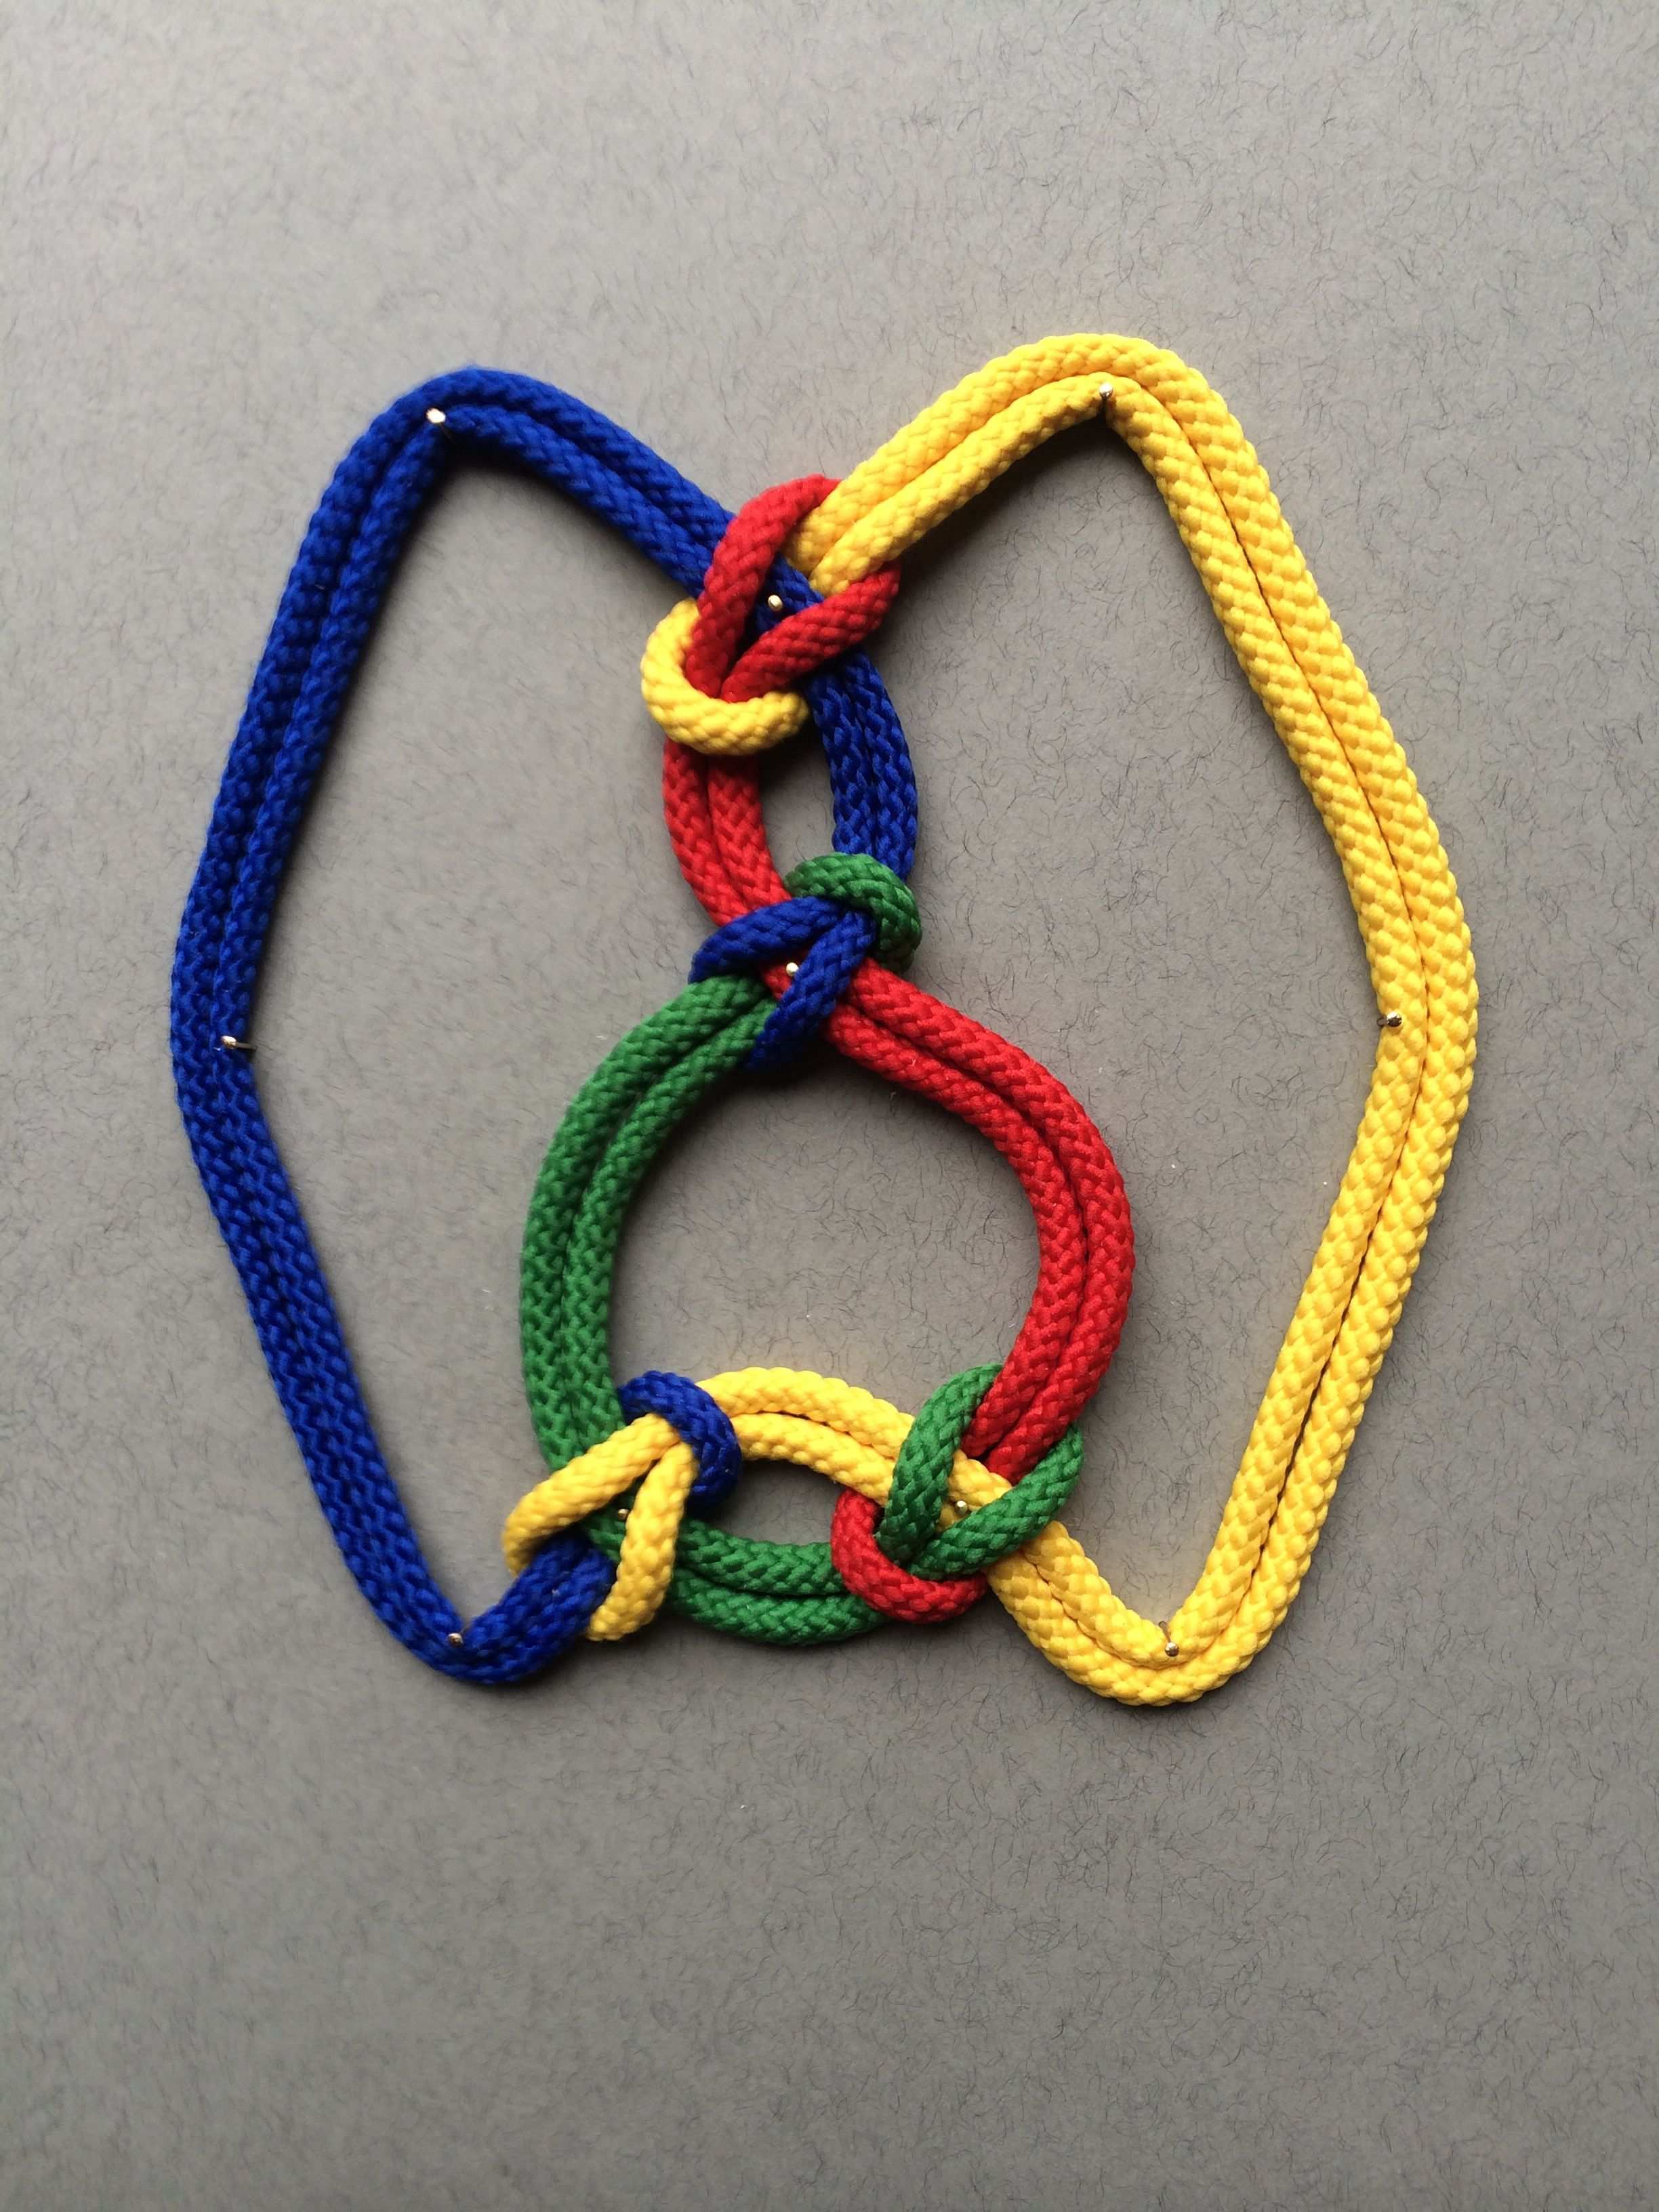 4 1 Knot Theory Based On The Only Mathematical Knot With